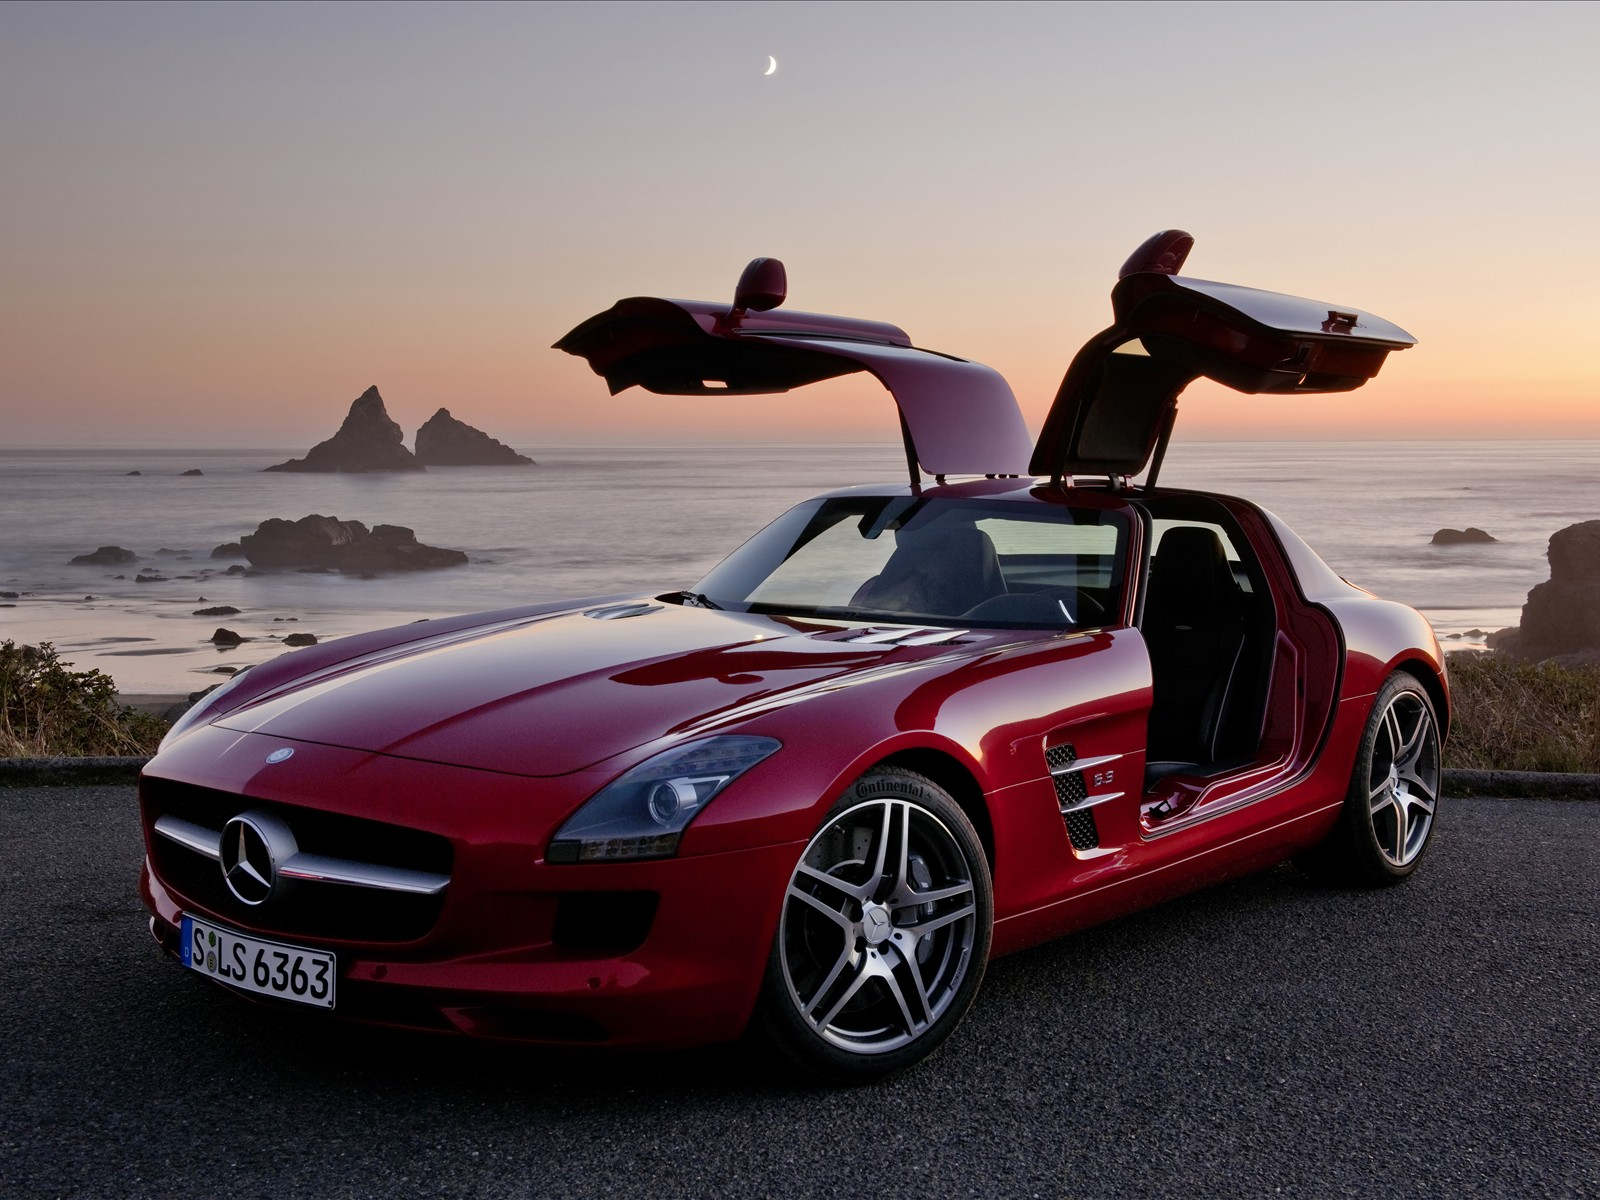 Mercedes - Benz Sls Amg Autos A Escala Mercedes Benz Sls Amg